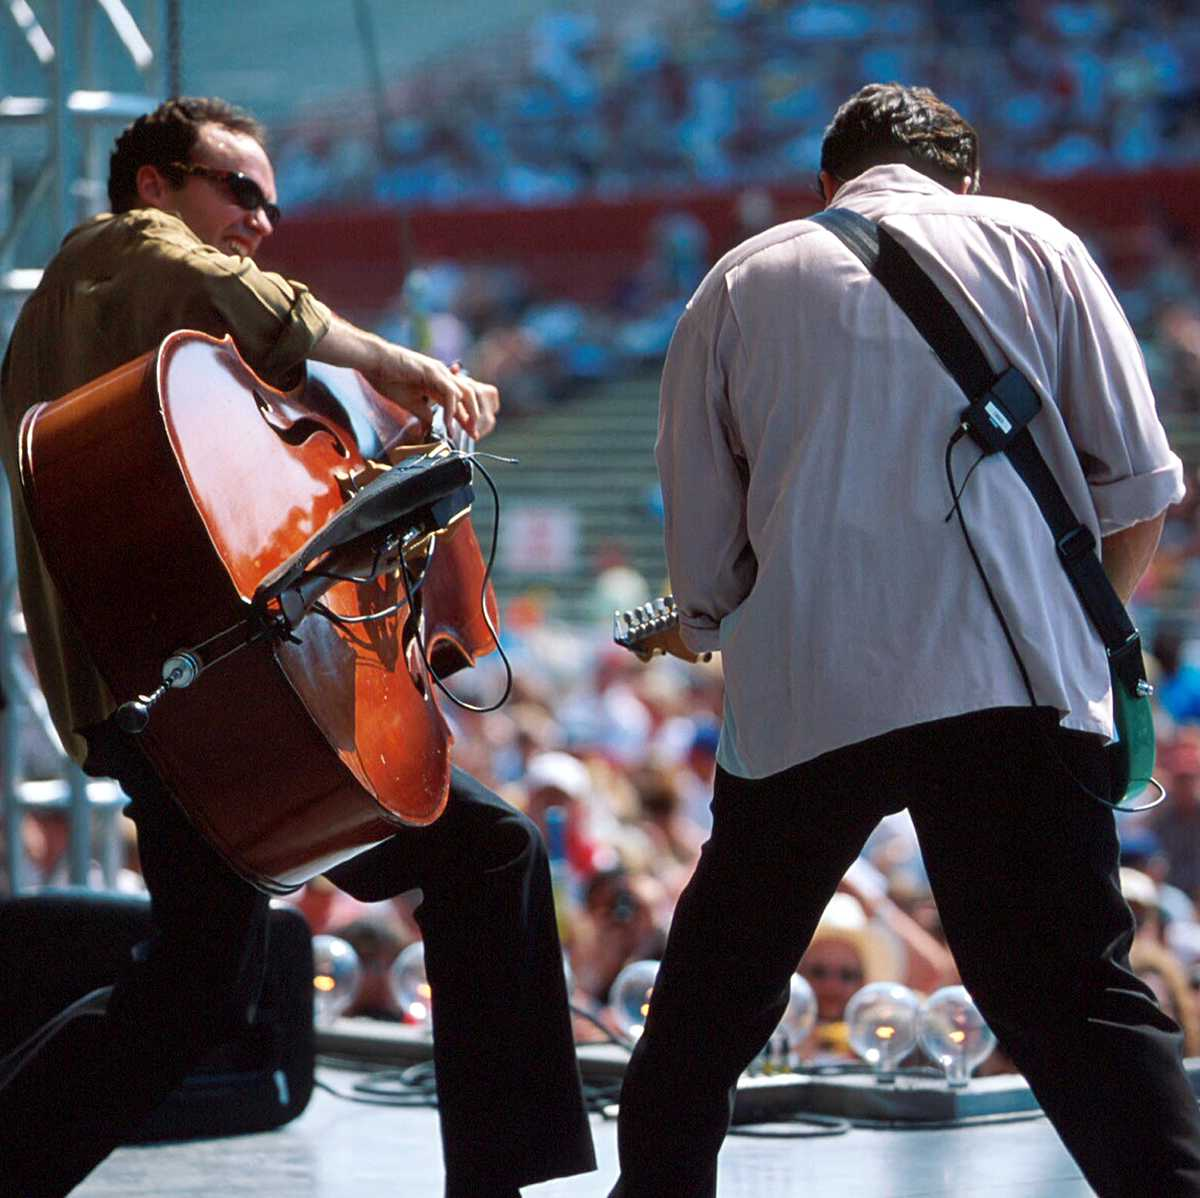 CMA Country Music Fest